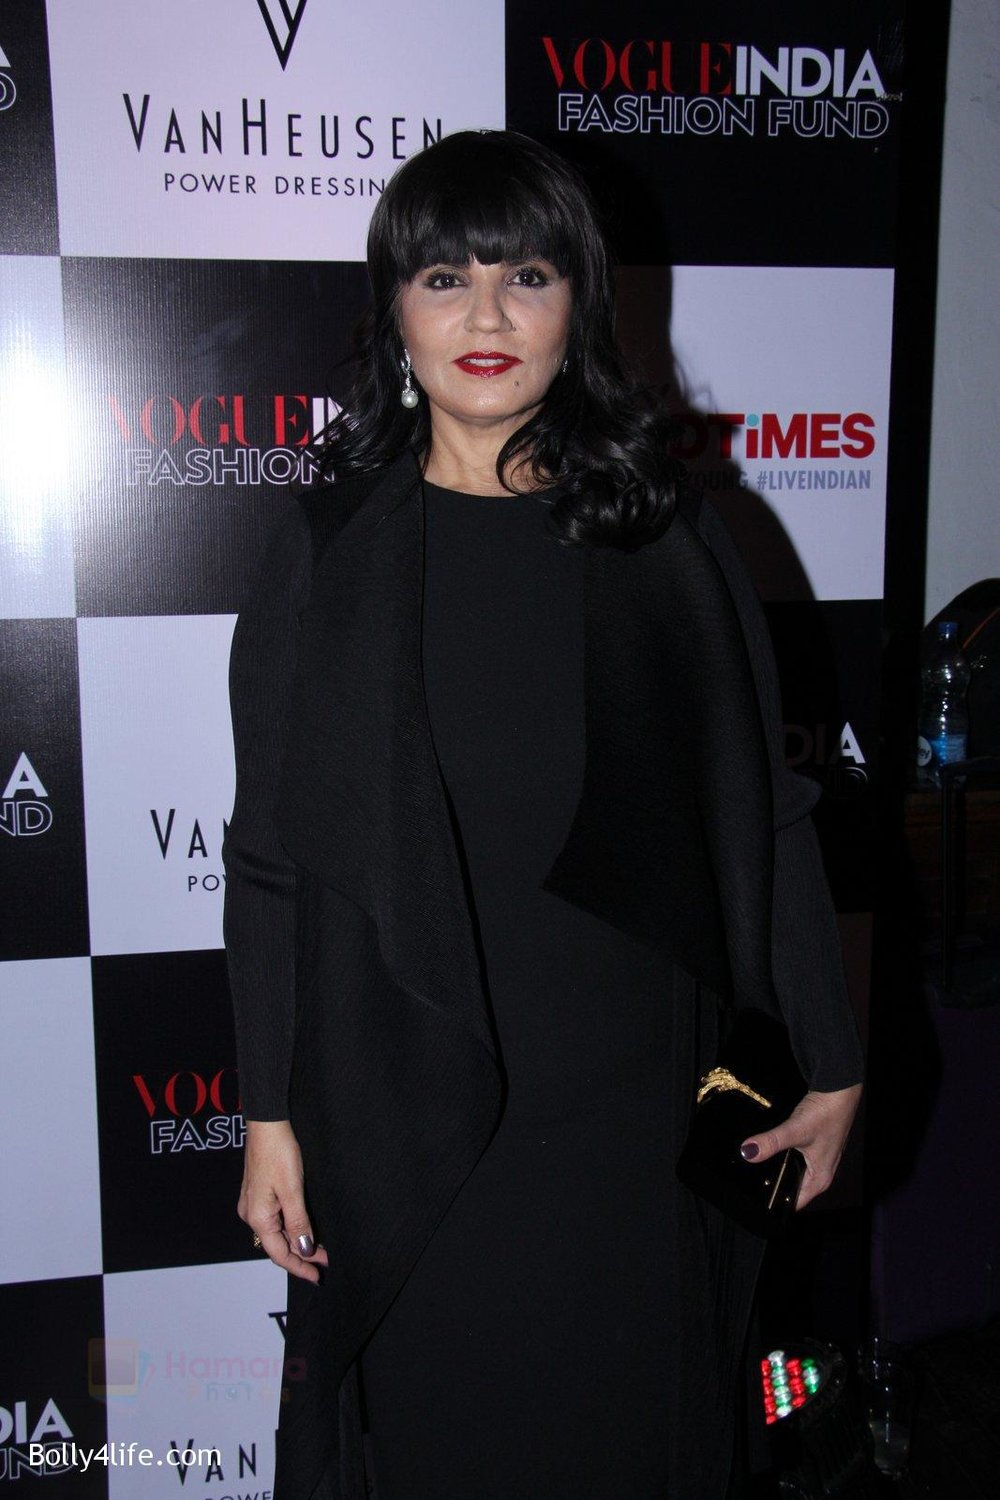 Neeta-Lulla-at-Vogue-India-Fashion-Fund-Event-1.jpg